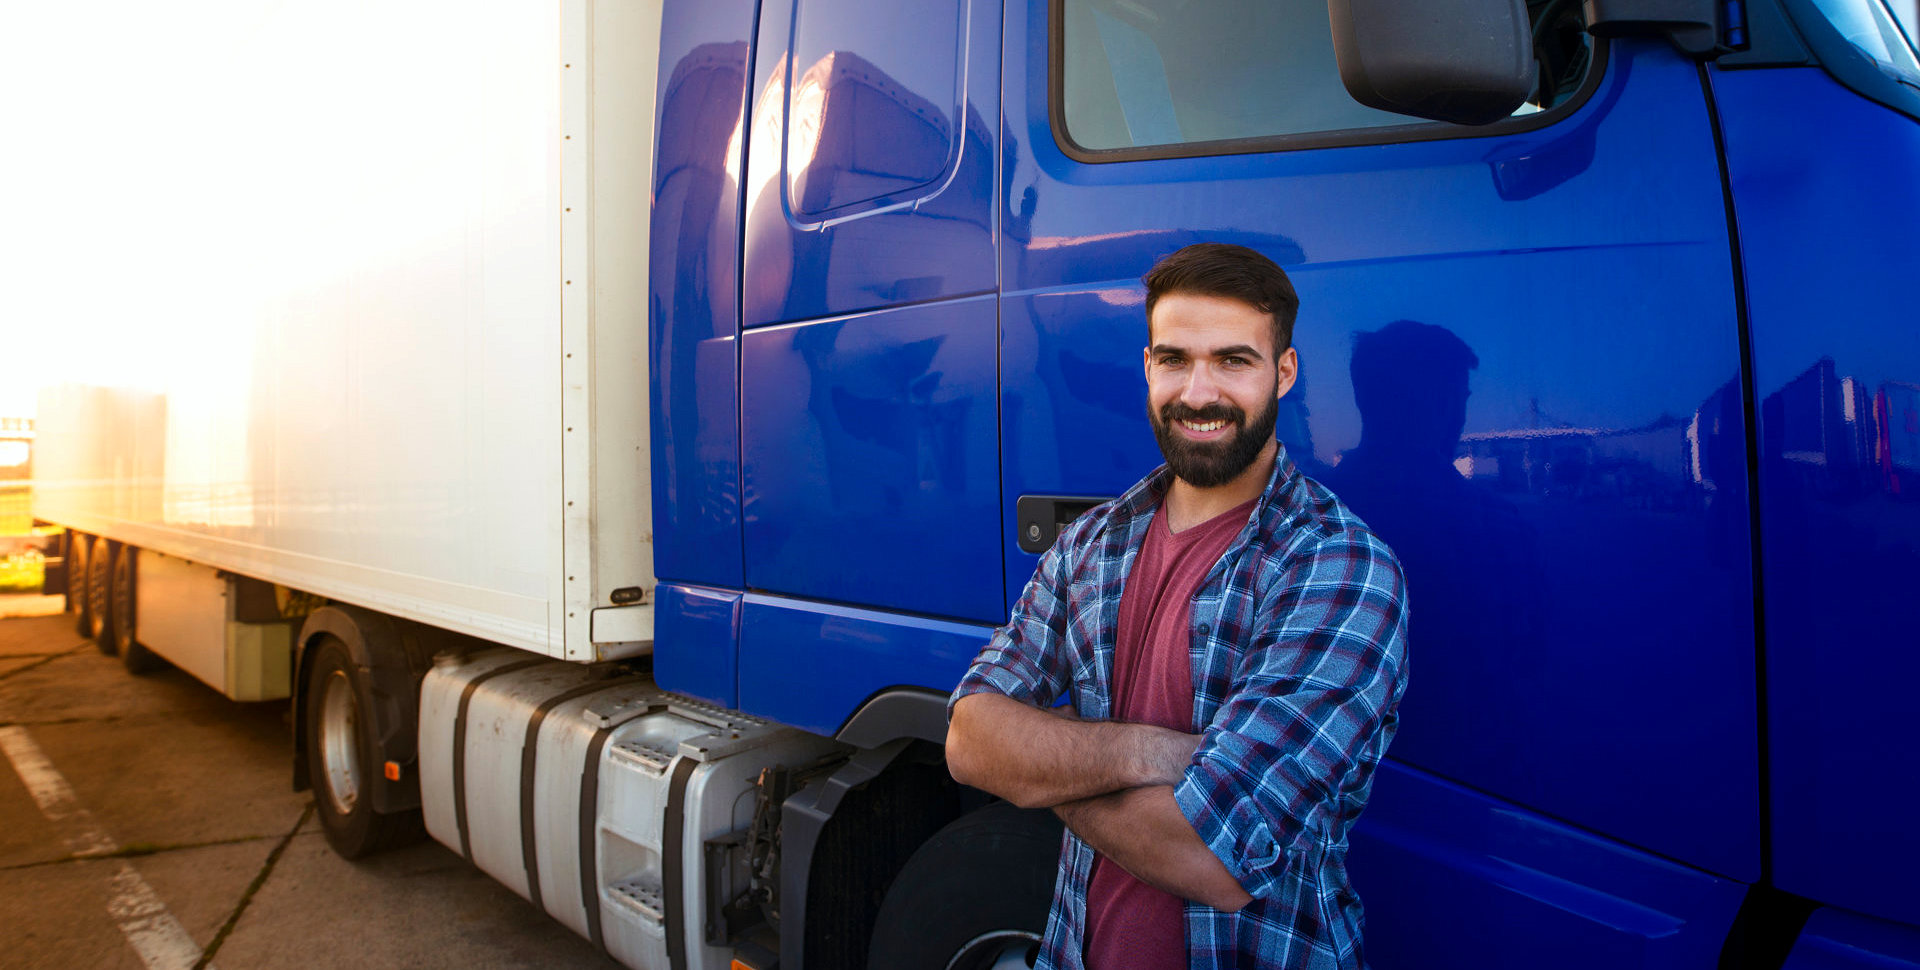 driver smilling with the blue truck